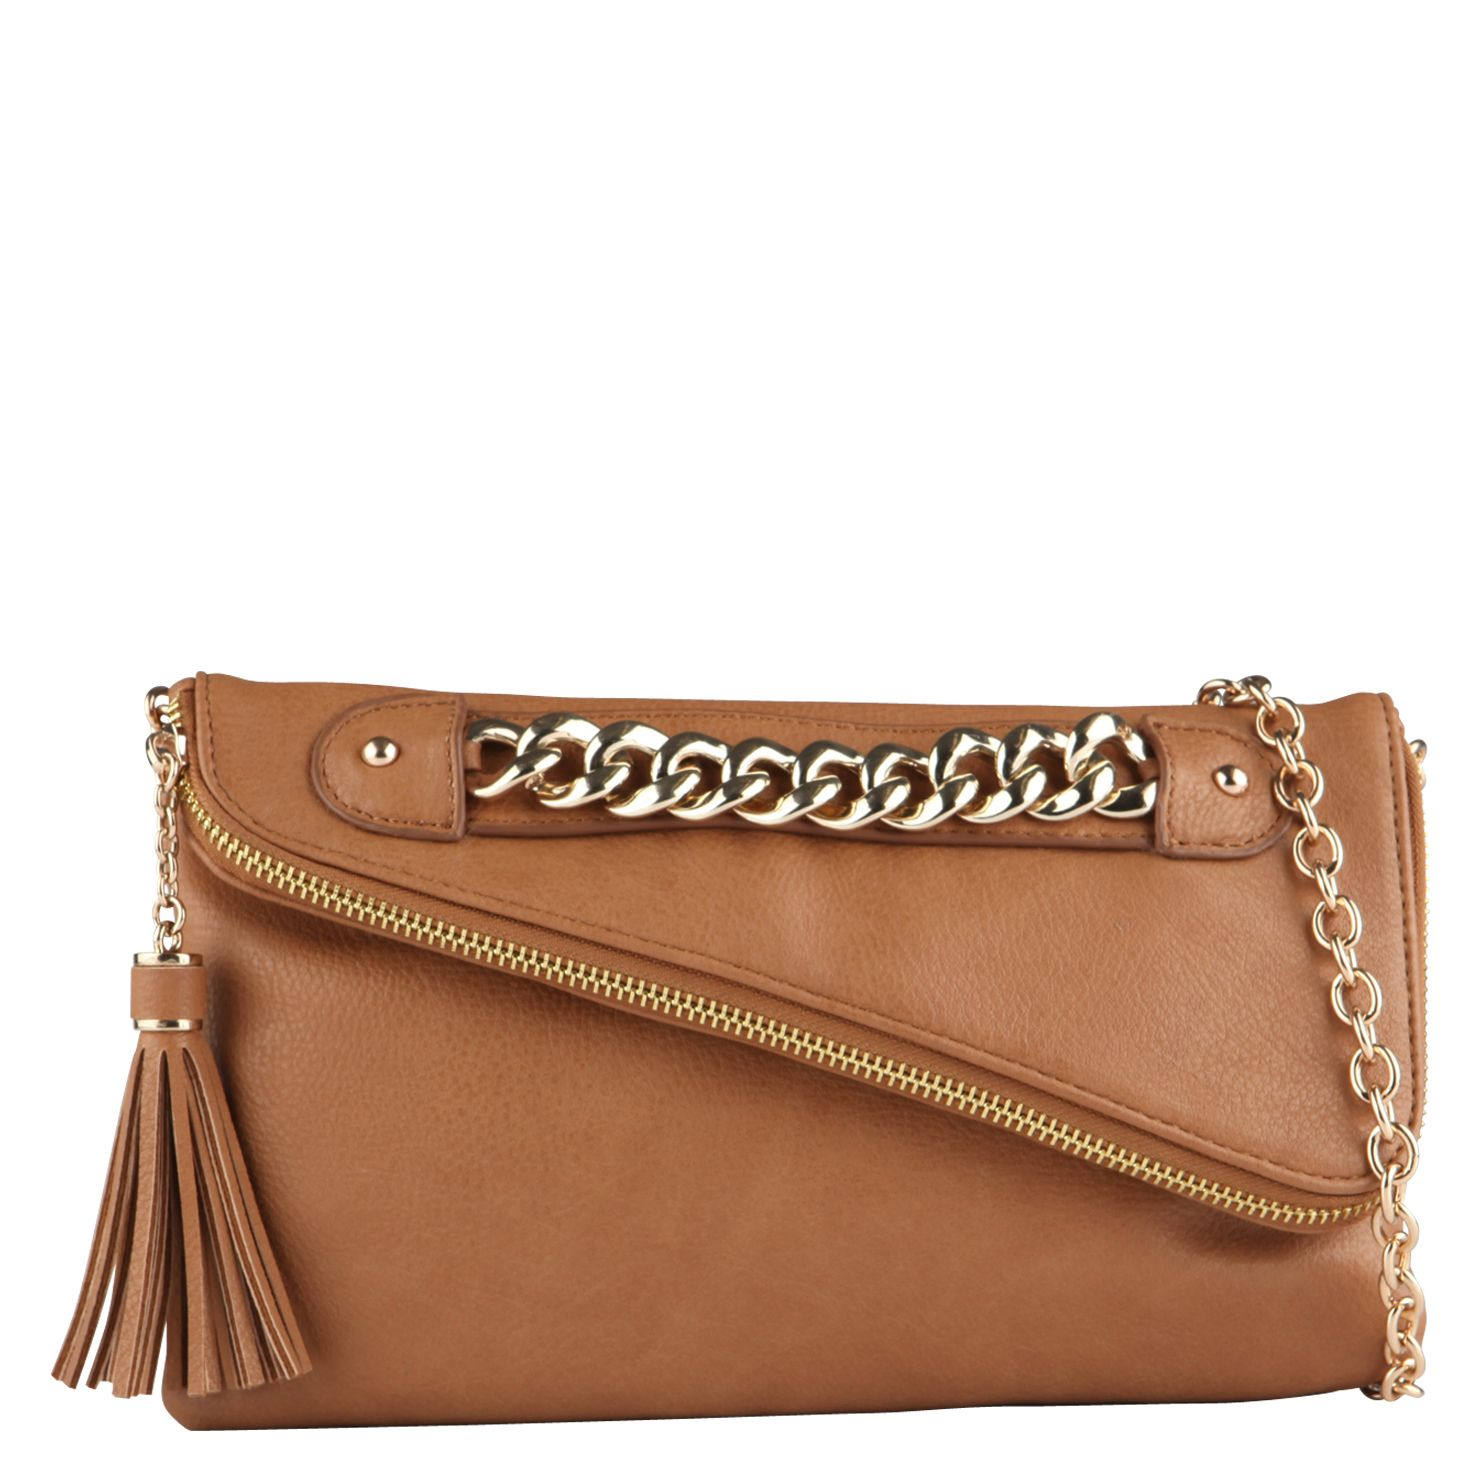 Wagoner assymetrical clutch bag